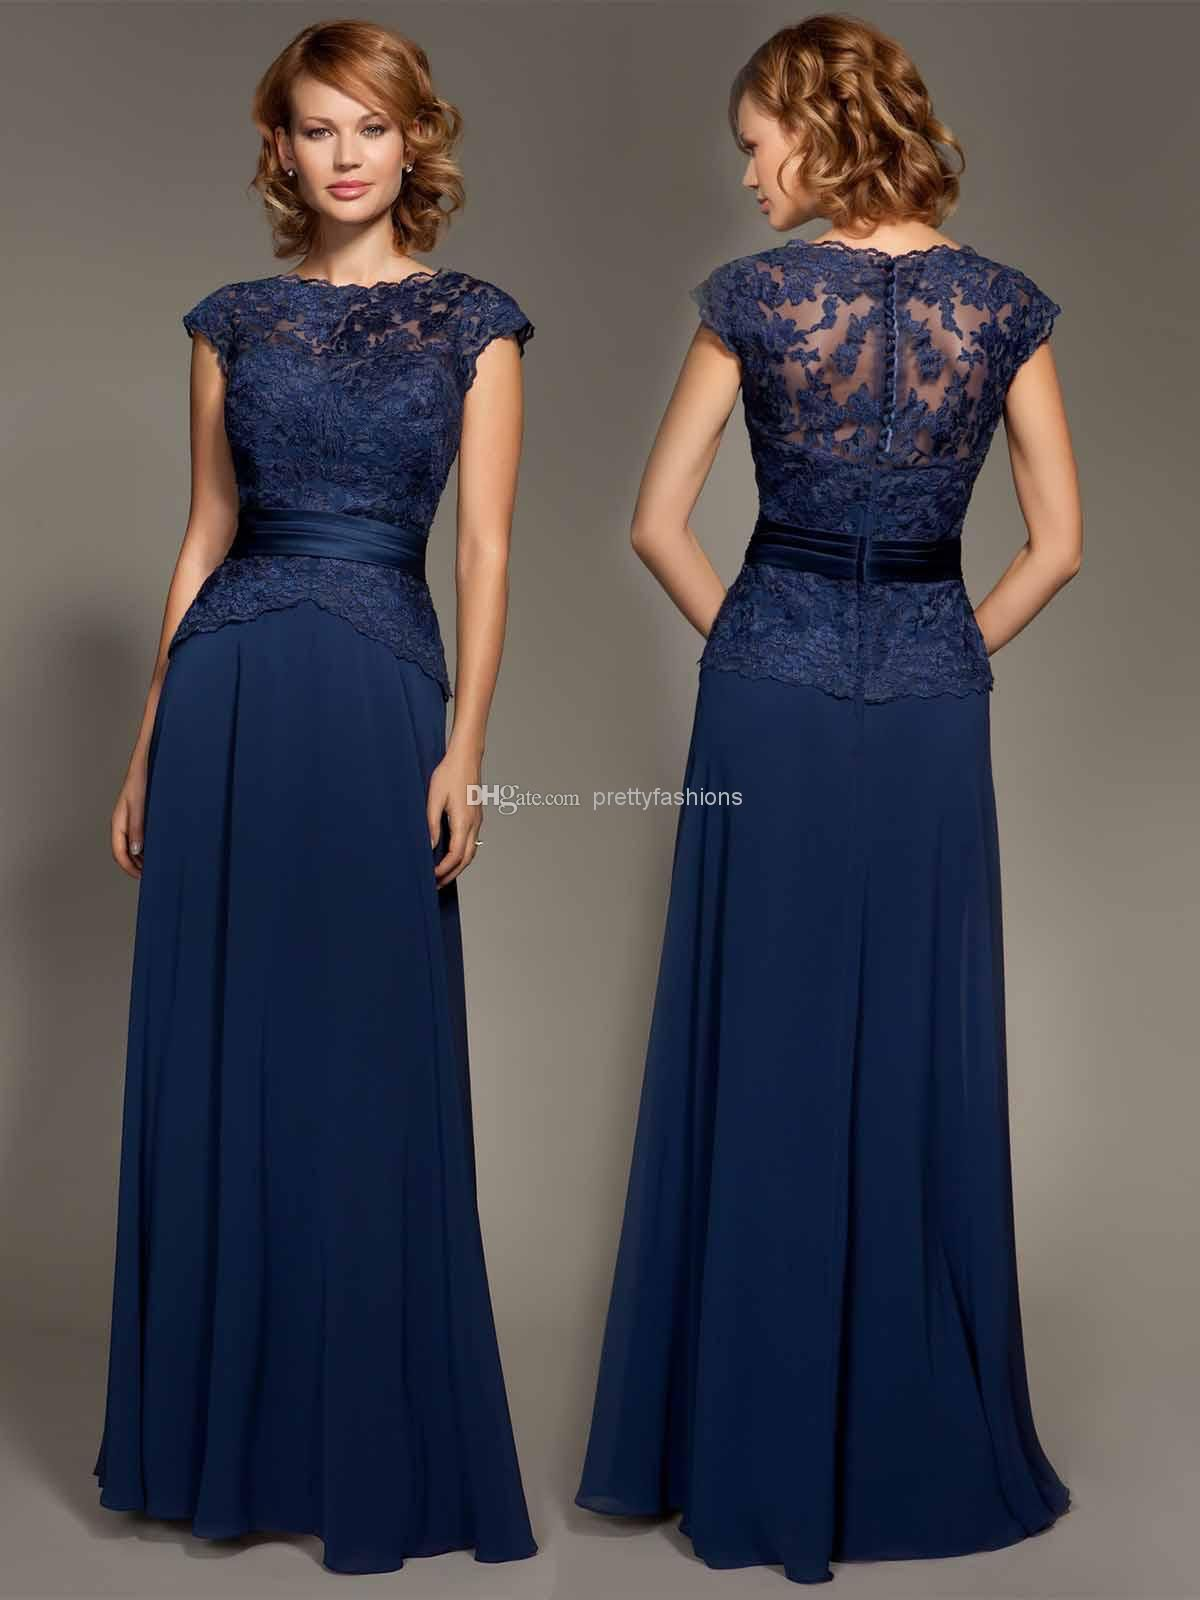 2014 elegant cheap navy blue bridesmaid dresses sheer crew neck 2014 elegant cheap navy blue bridesmaid dresses sheer crew neck short sleeve sheer lace back long chiffon pageant evening dress formal gowns ombrellifo Image collections